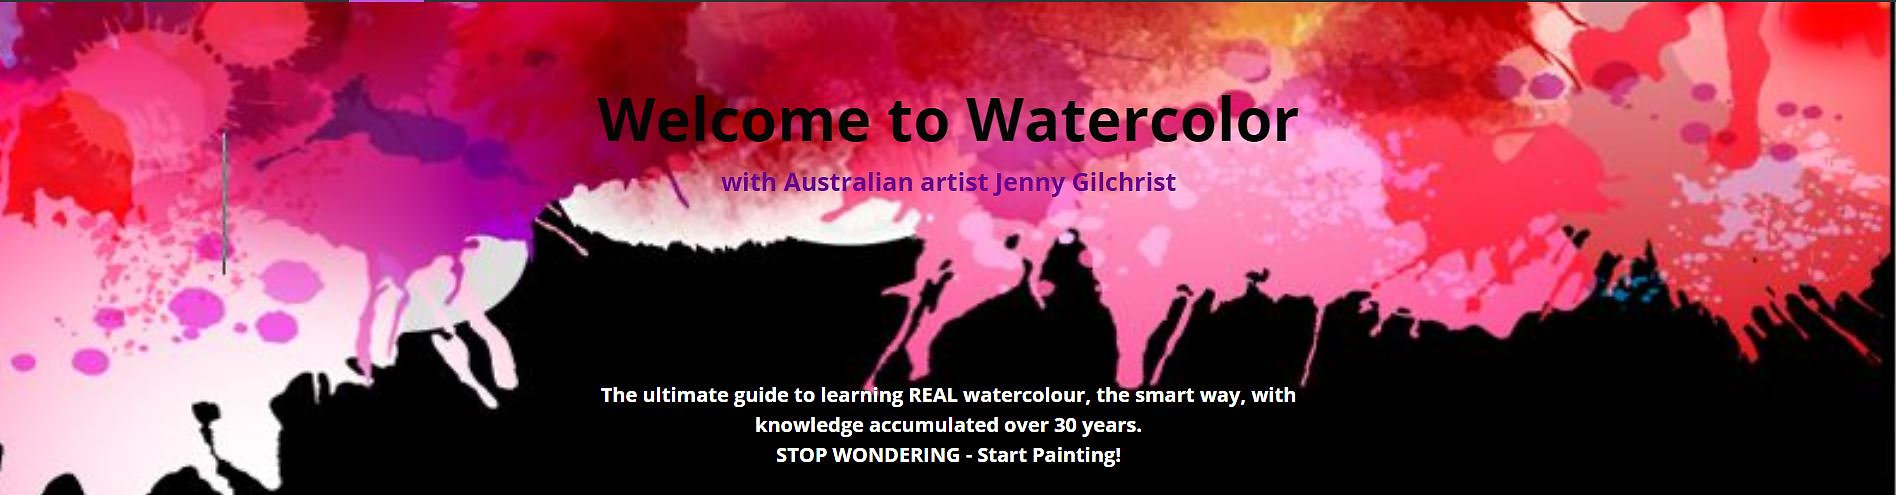 Online watercolour painting course with Jenny Gilchrist